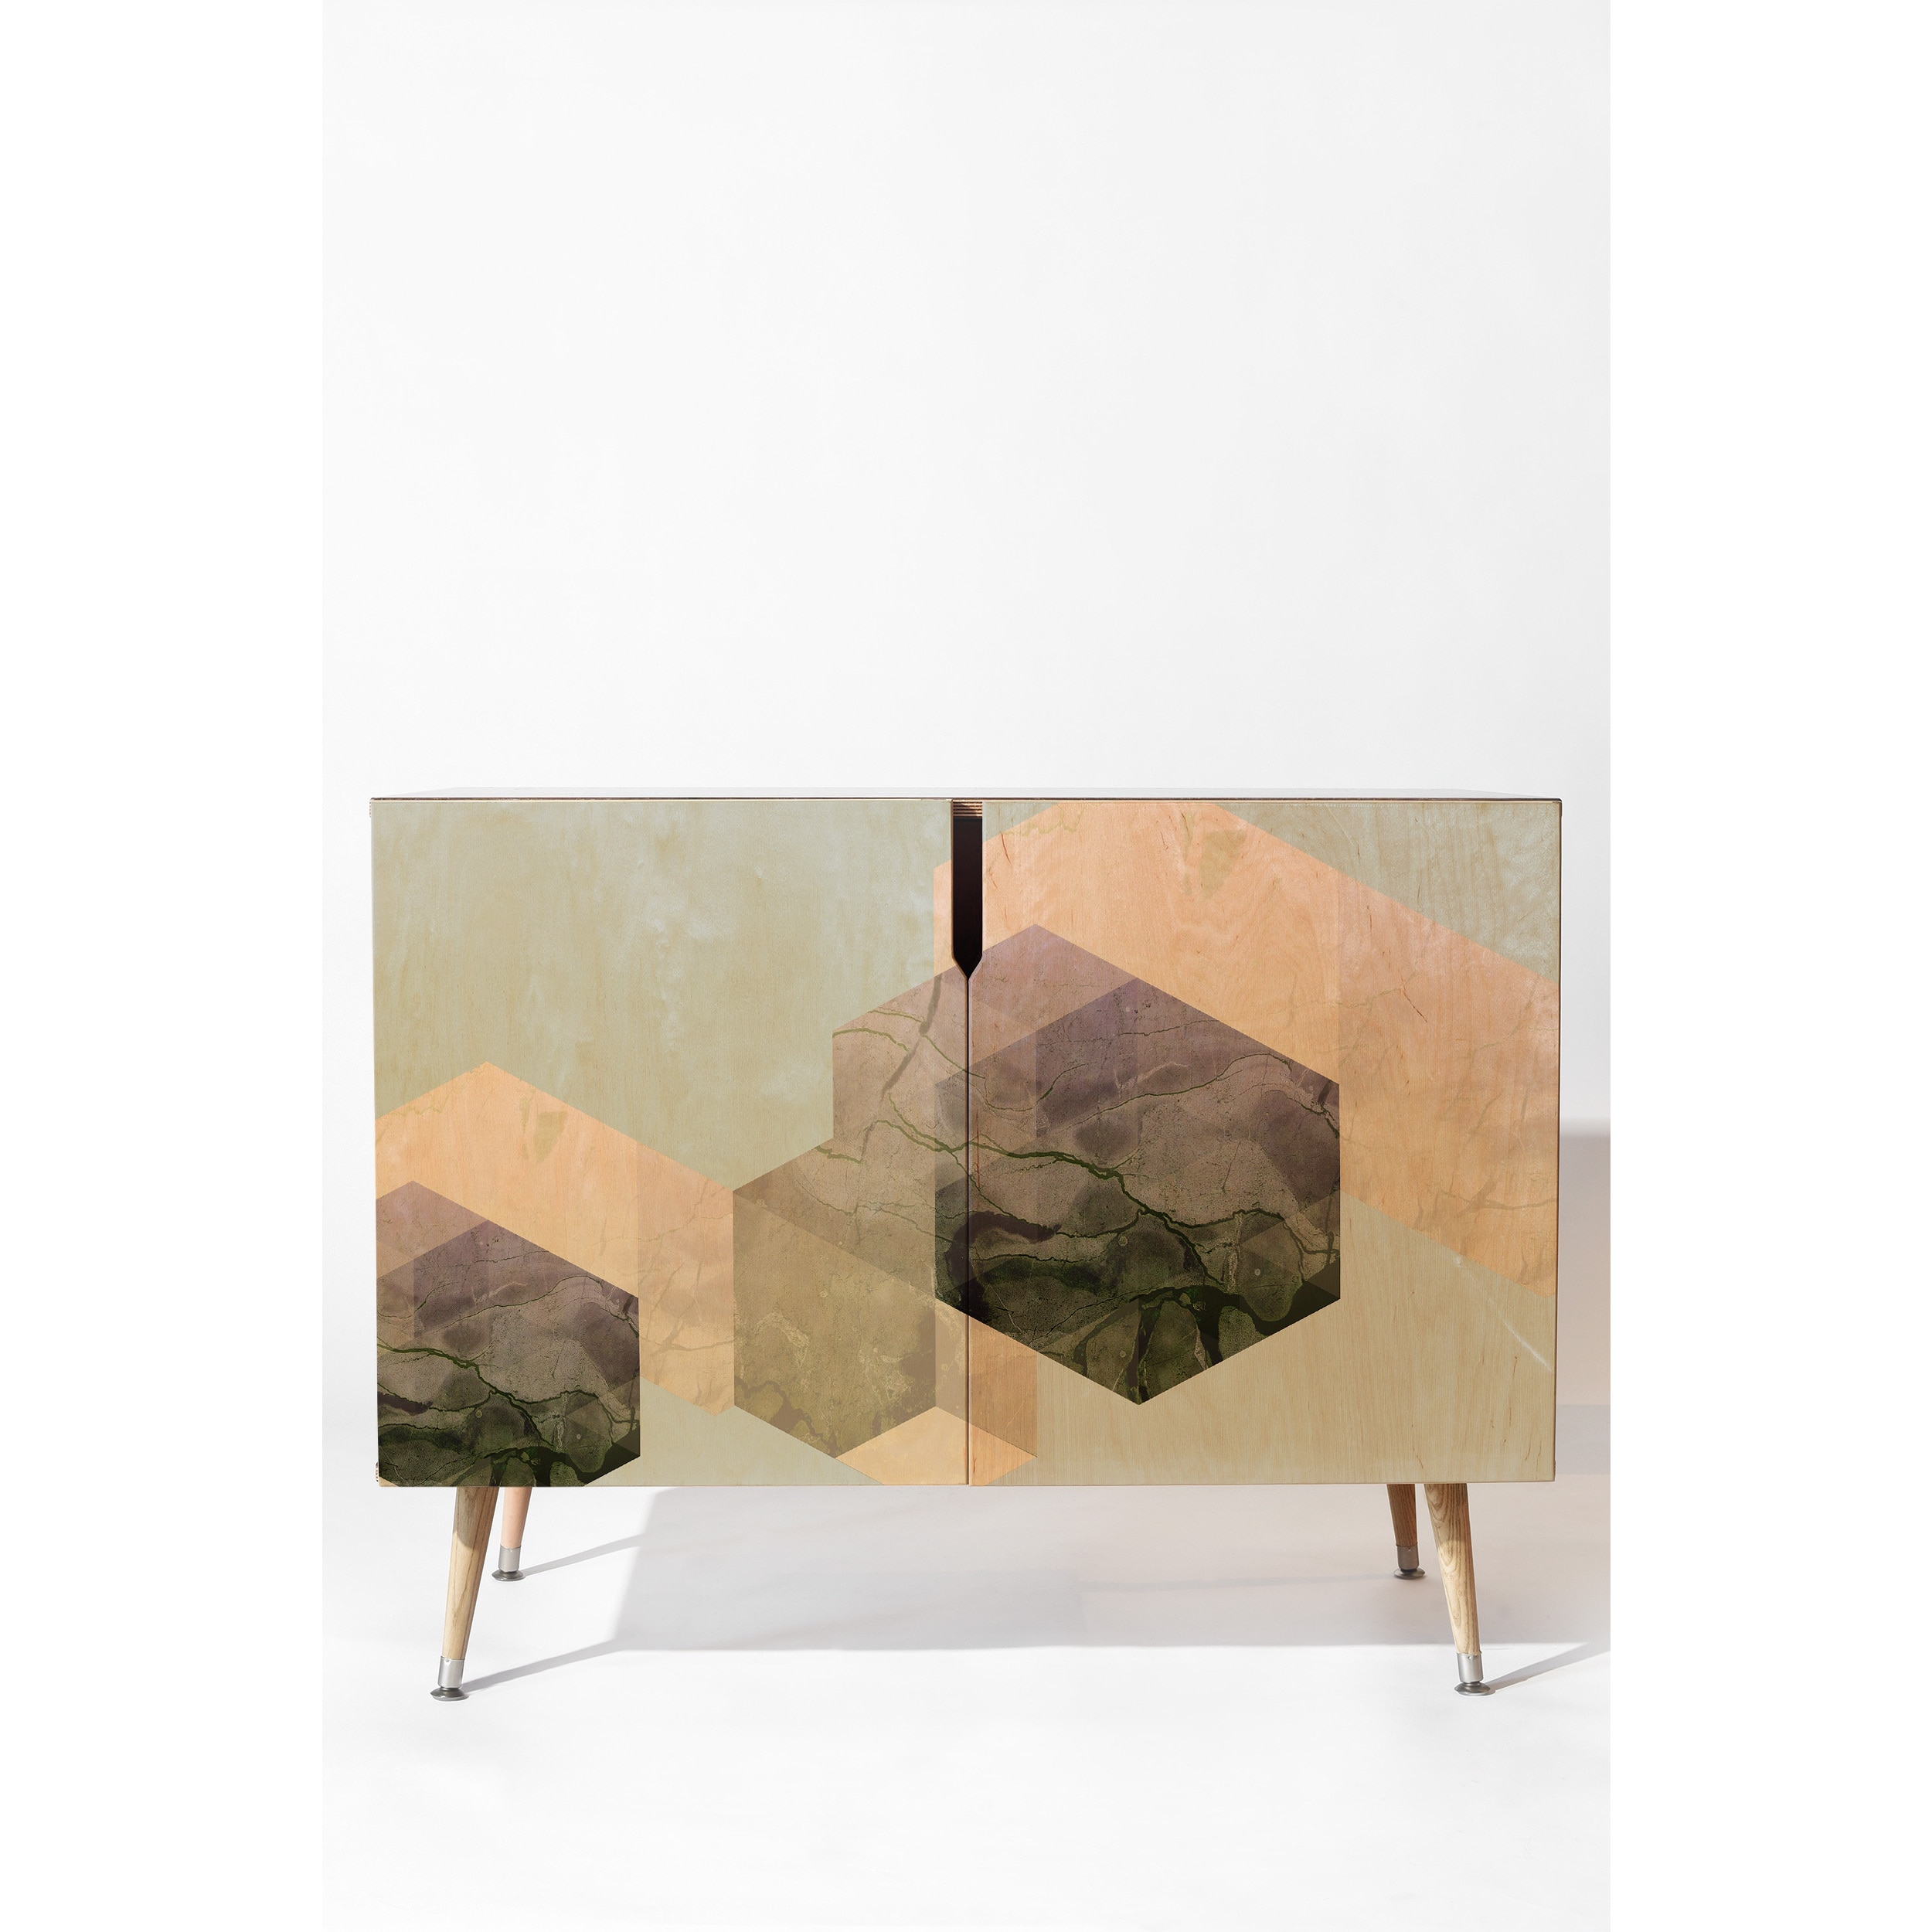 Deny Designs Emanuela Carratoni Marble Geometry Credenza Inside Multi Colored Geometric Shapes Credenzas (Photo 28 of 30)